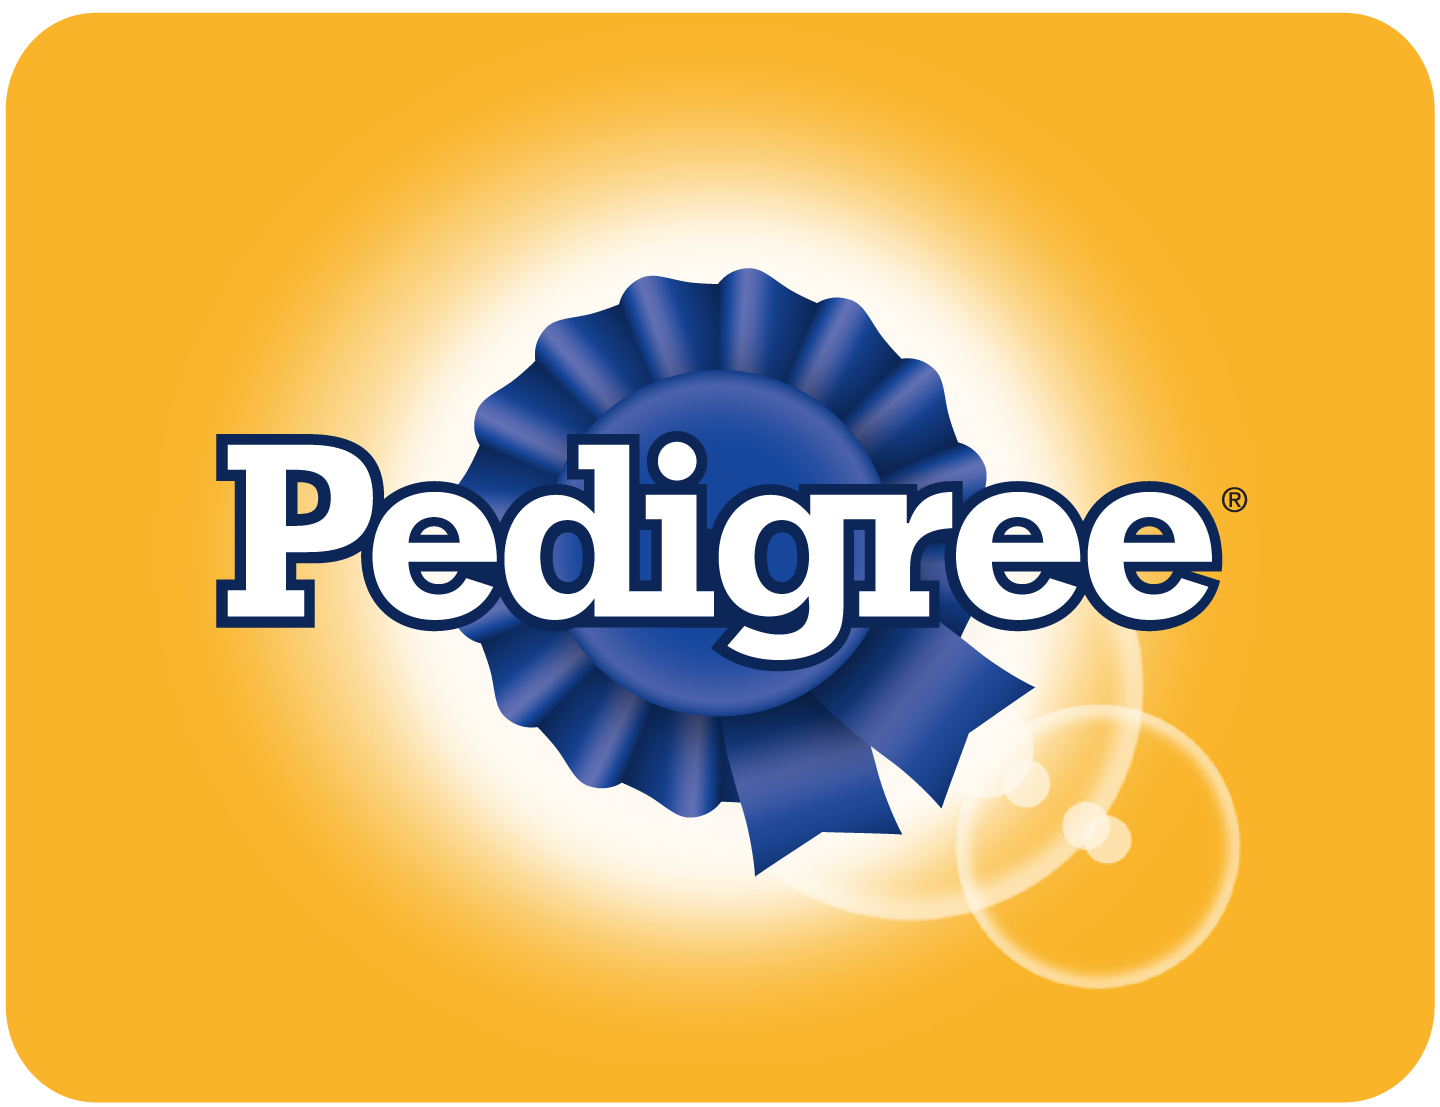 pedigree logo 2 - Pedigree Logo